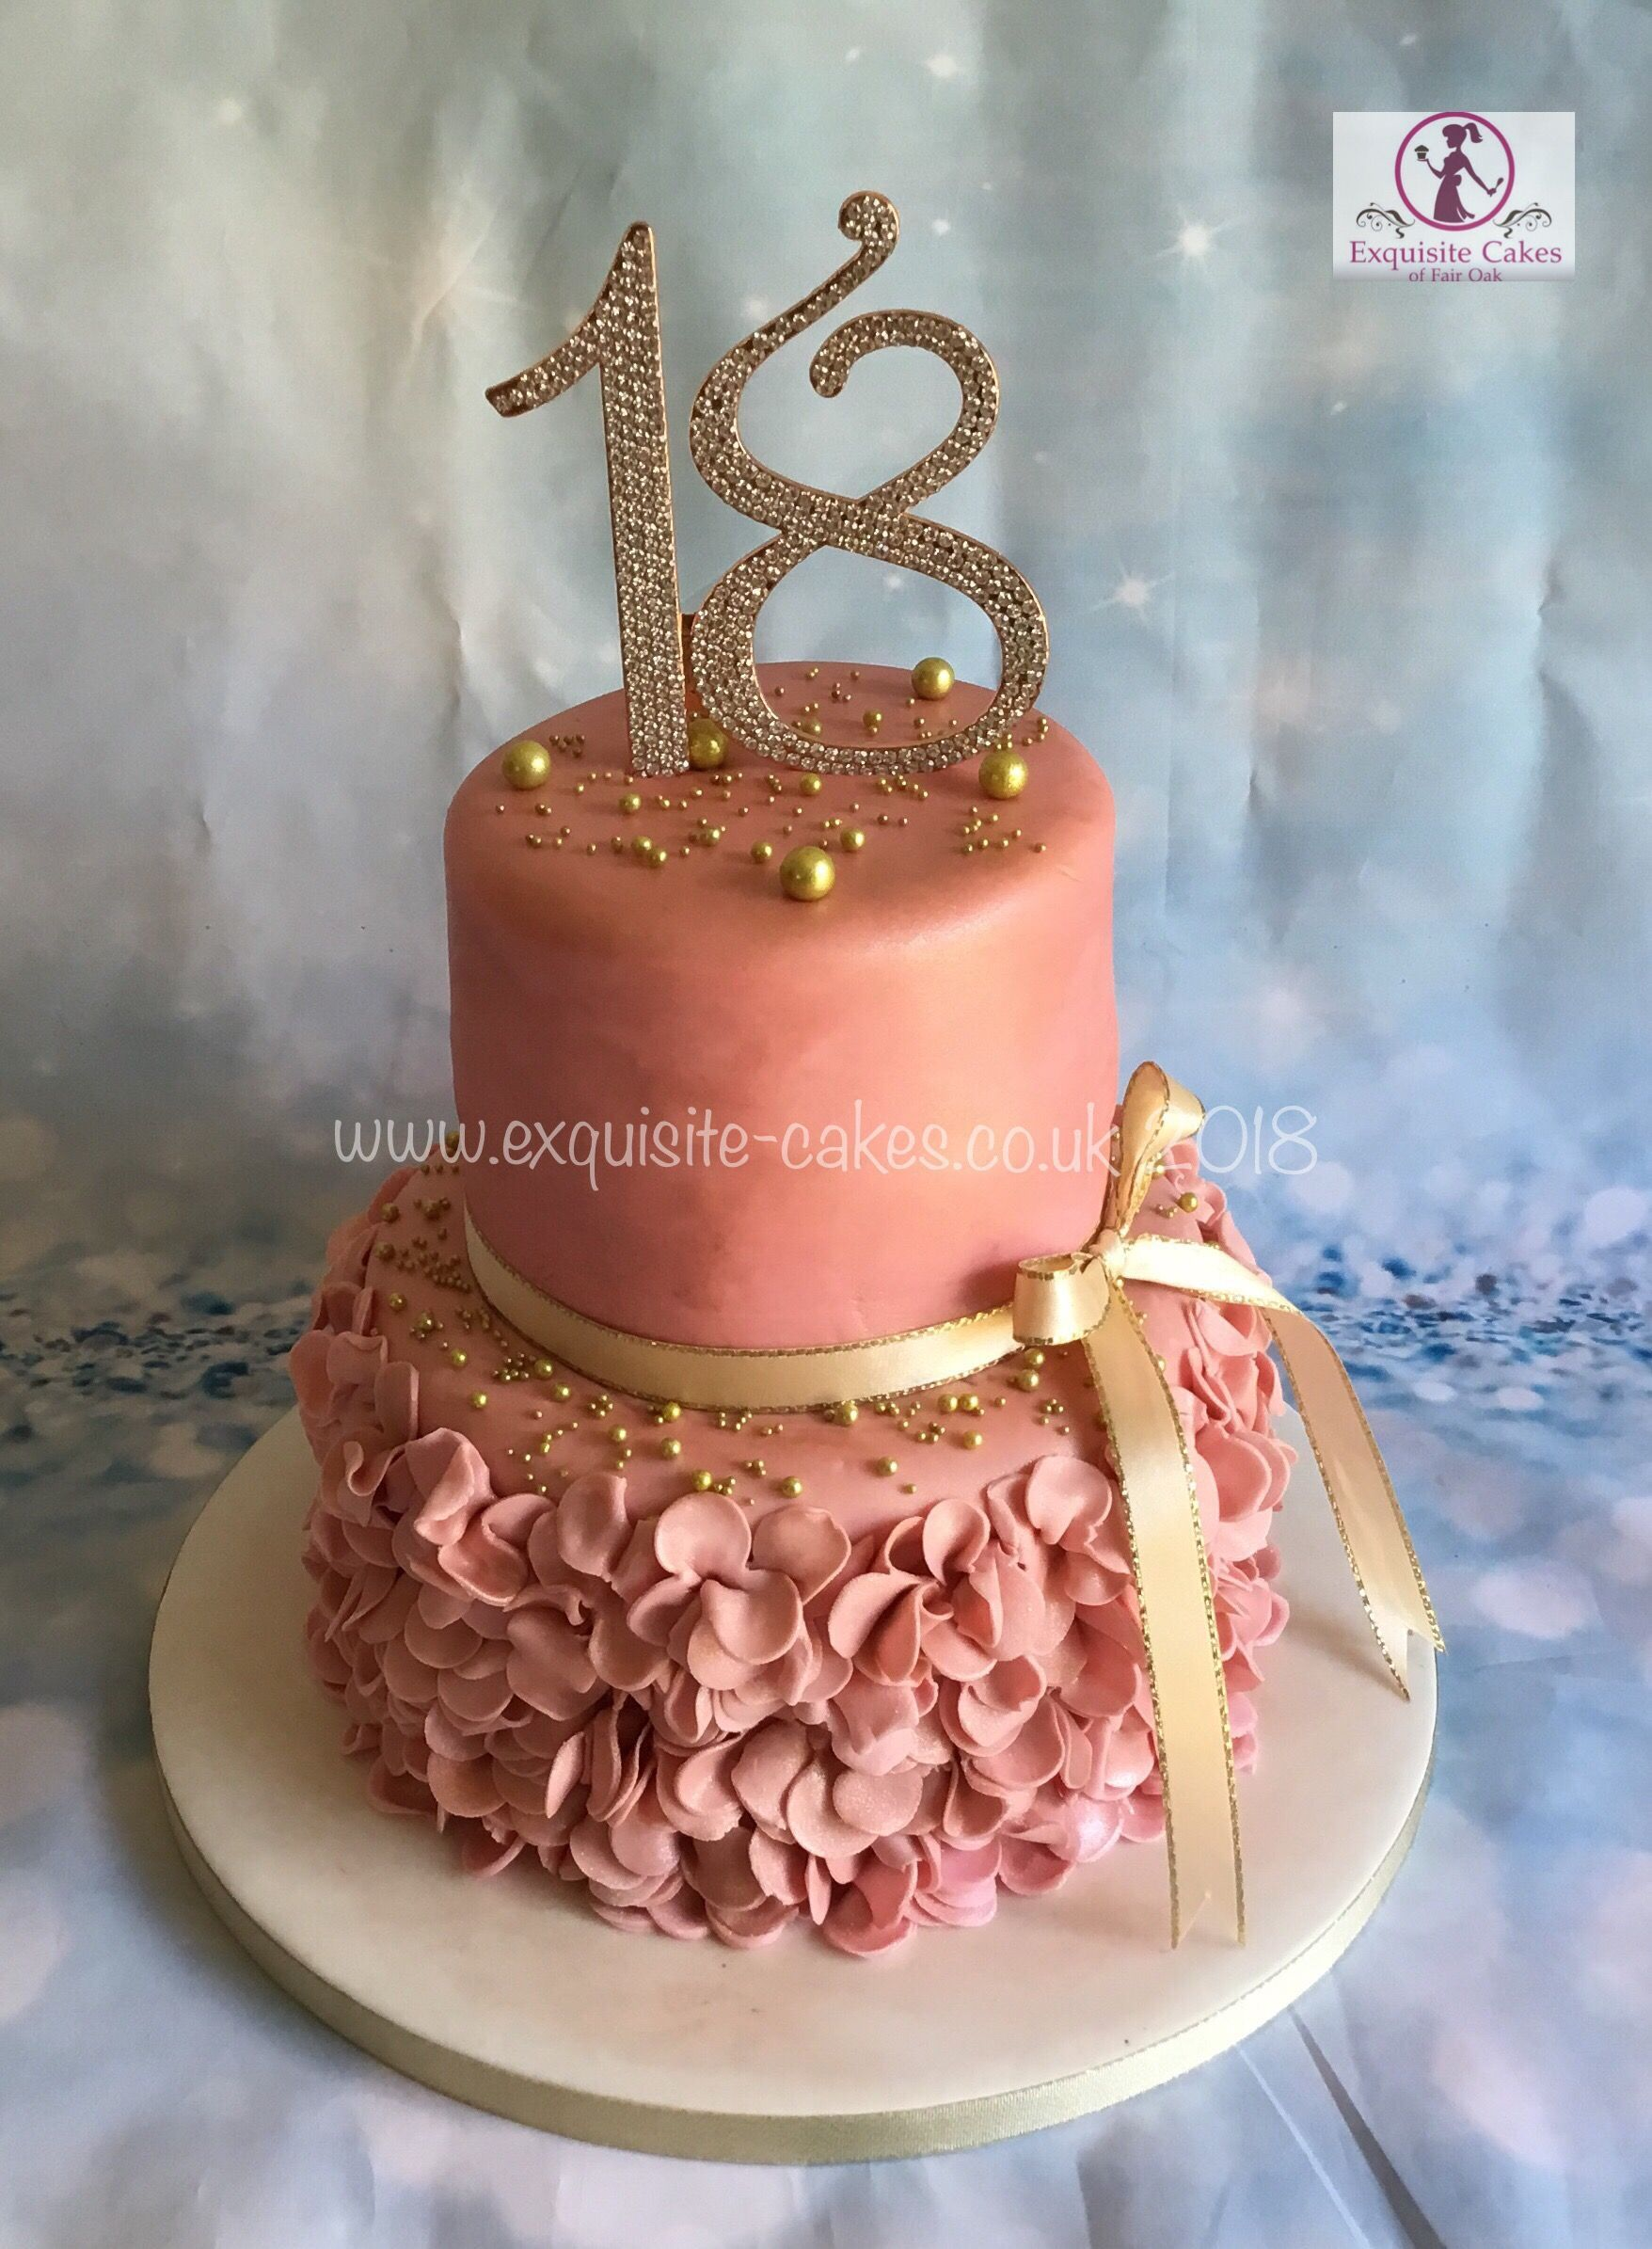 18th Birthday Cake Ideas Female : birthday, ideas, female, Great, Photos, Birthday, Surprise, Popular, Solution, People, Unquestionably, Girls,, Roses,